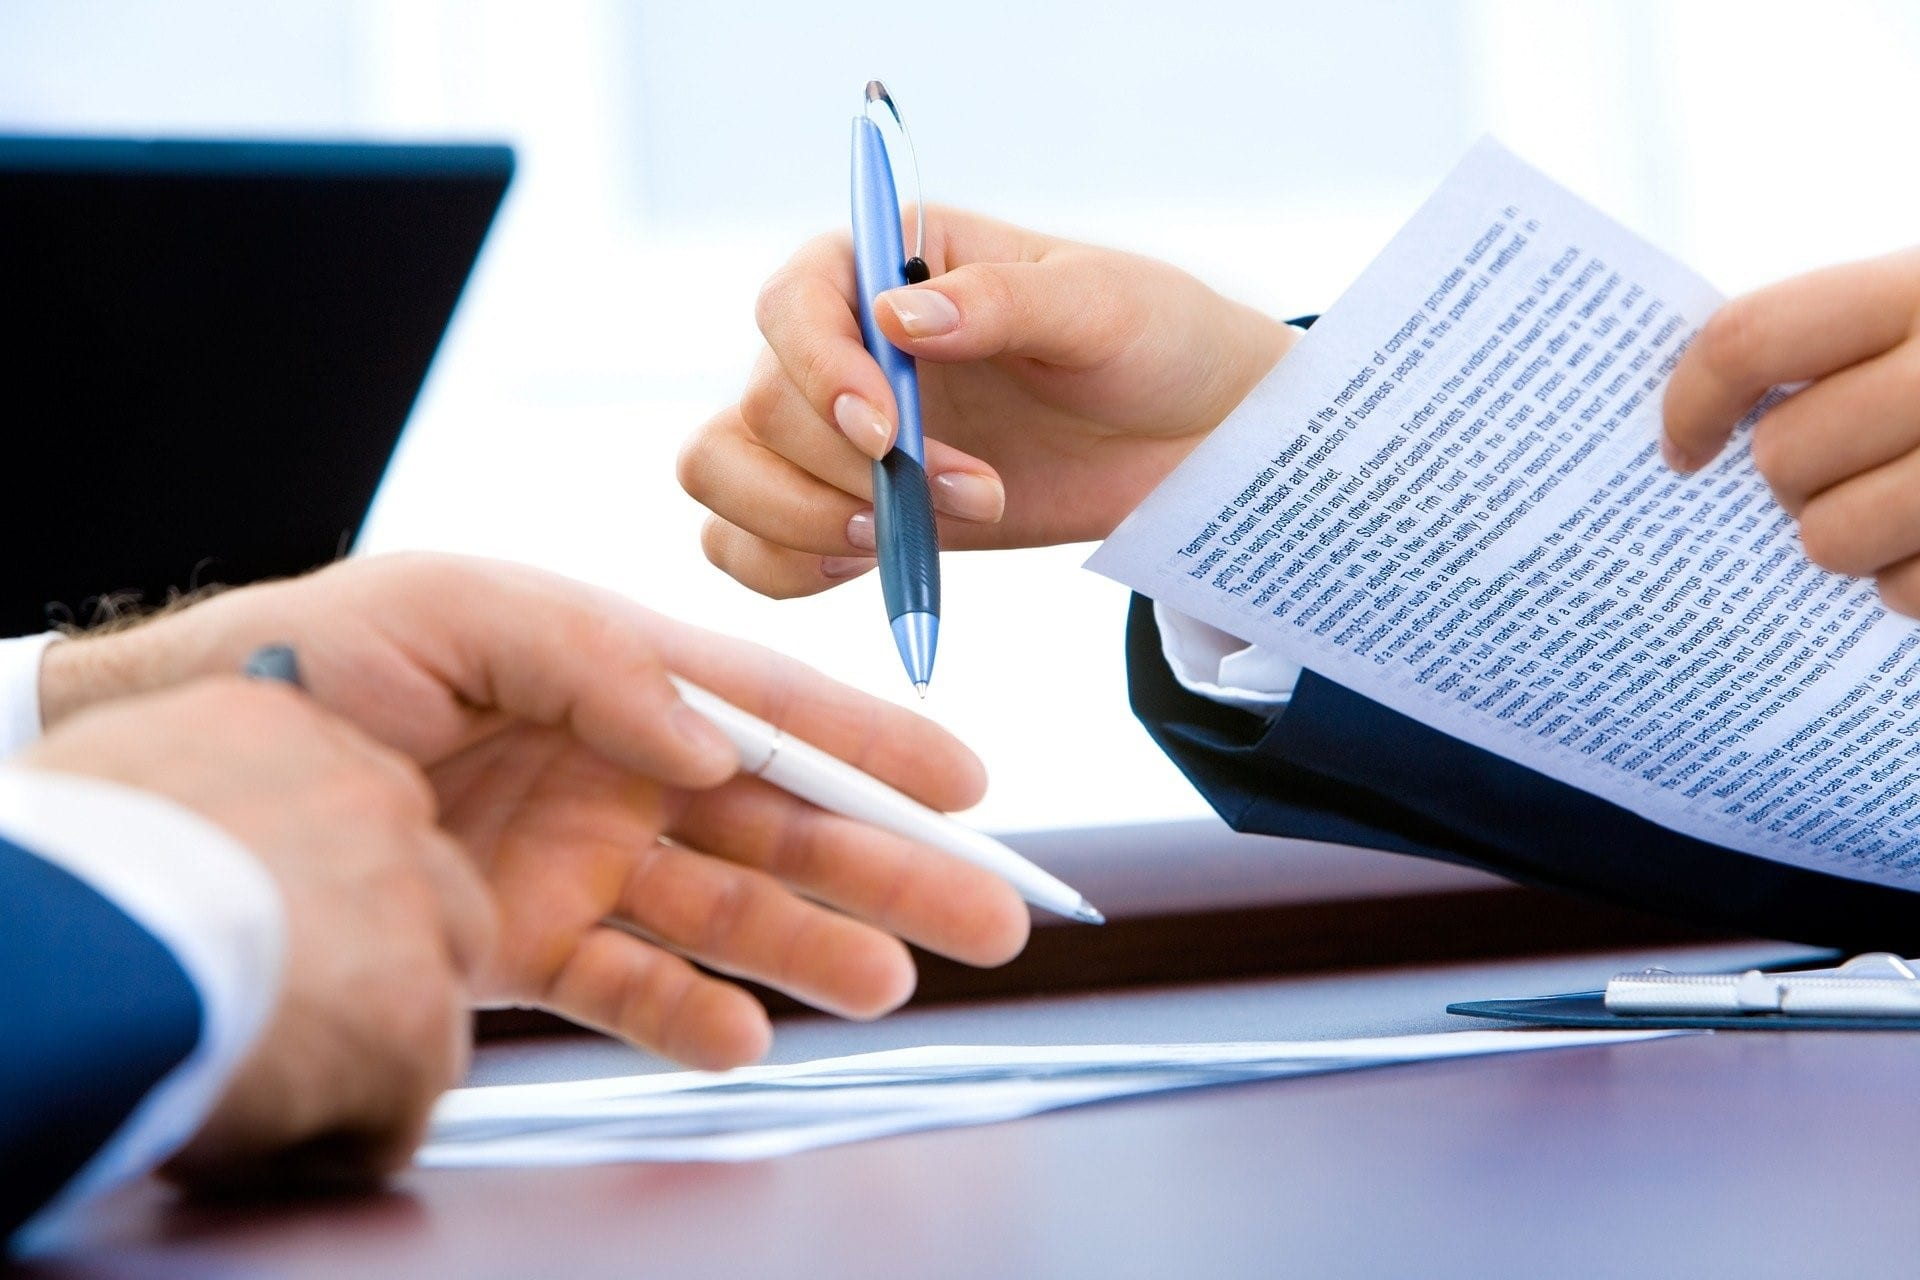 Lawyer and client having a discussion over legal documents